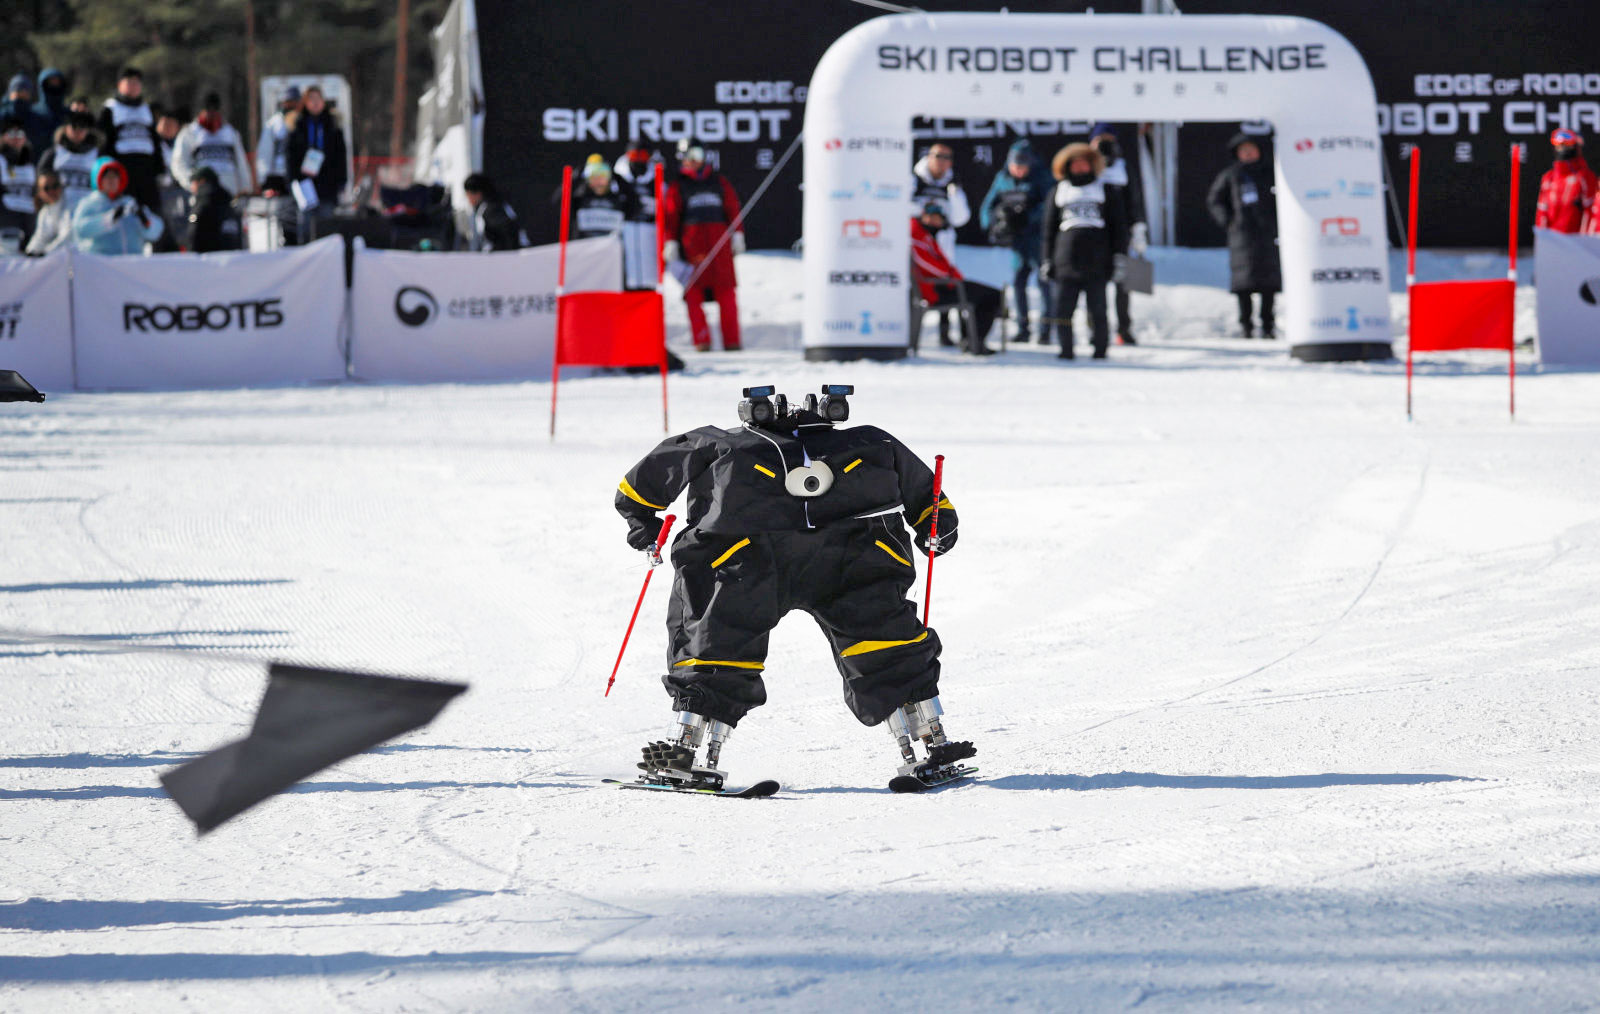 photo image Robots had their own skiing competition at the Winter Olympics